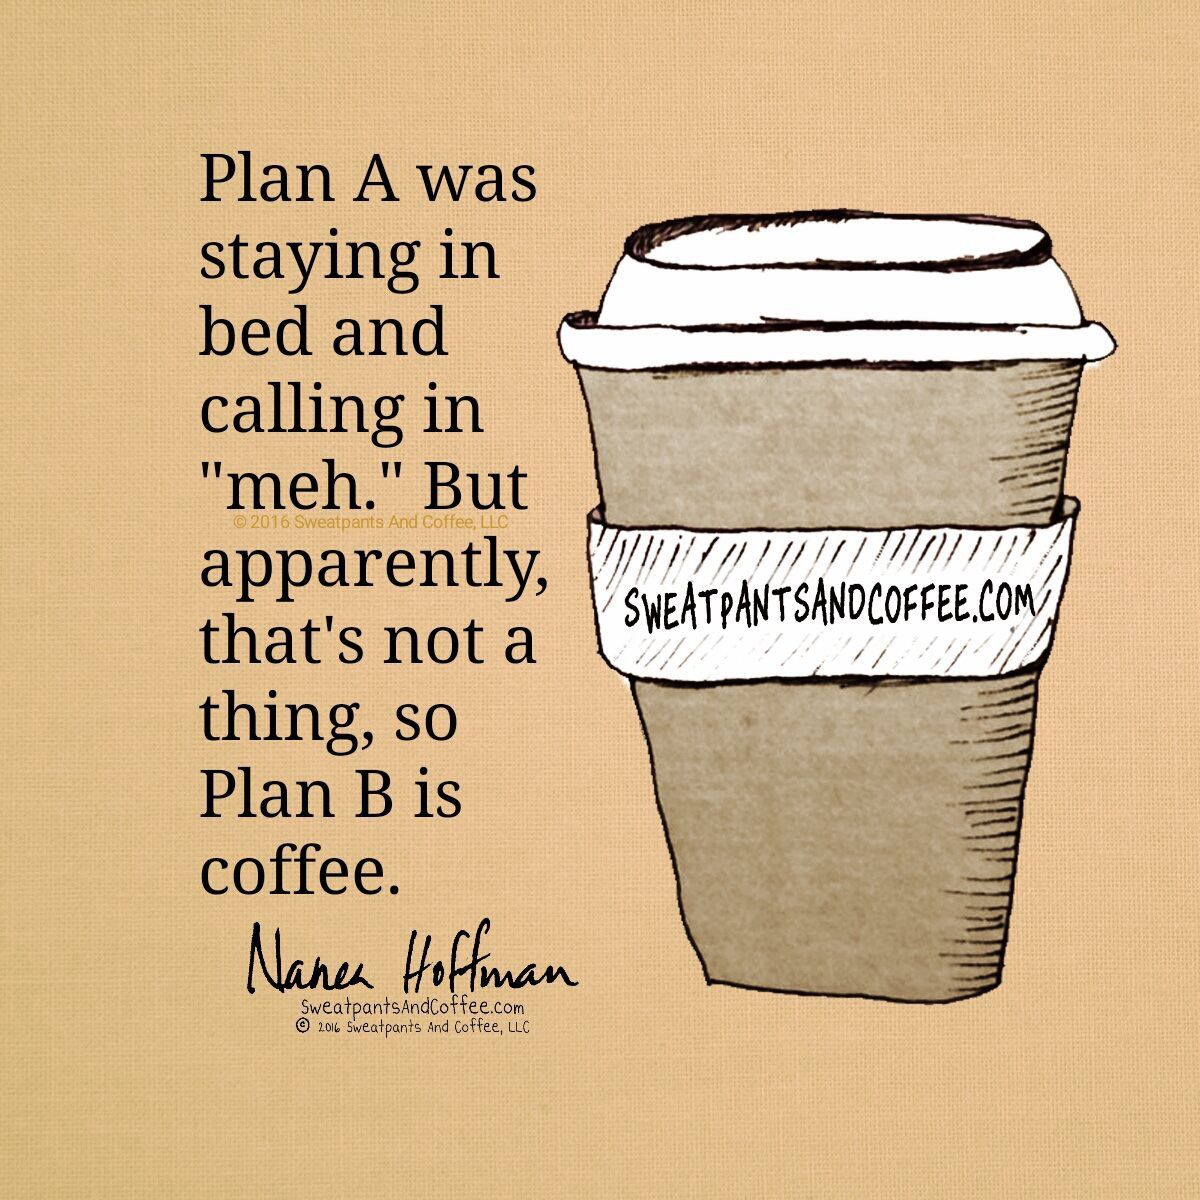 Calling In Meh Is Not A Thing How Sad The Coffee Life Pinterest